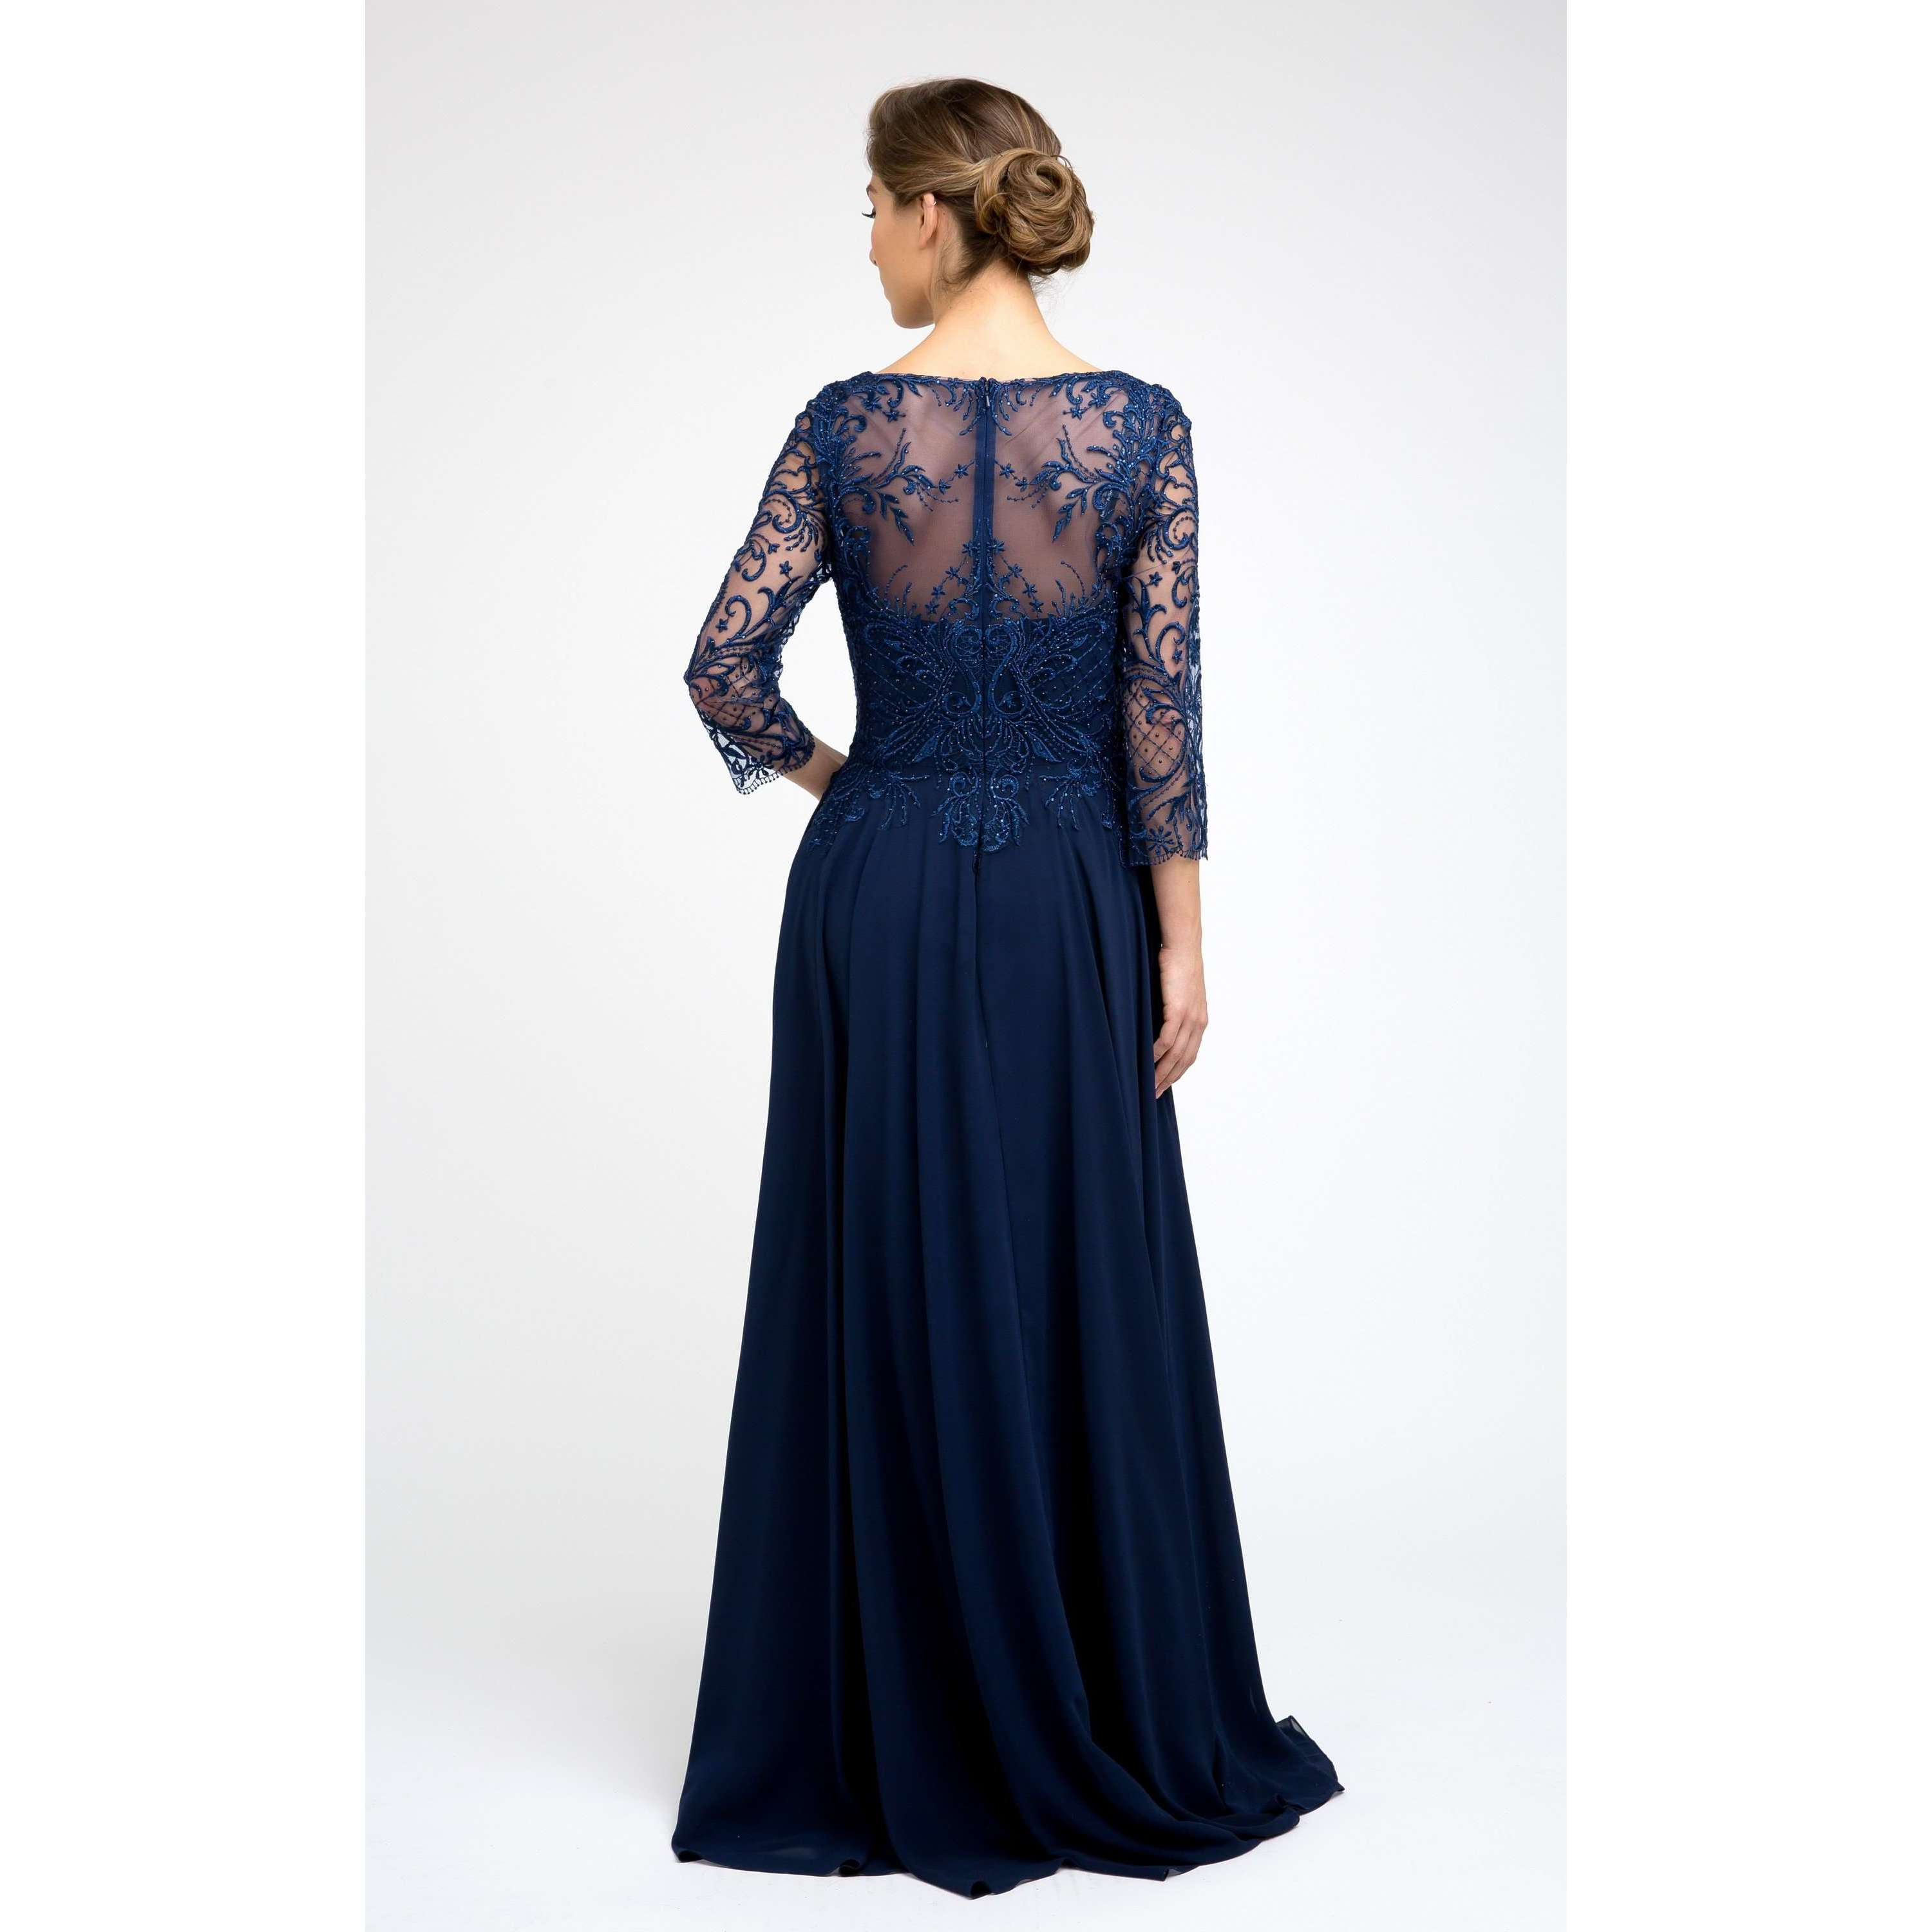 Embroidered Lace  Beaded Bodice Gown M11 - Julietdresses